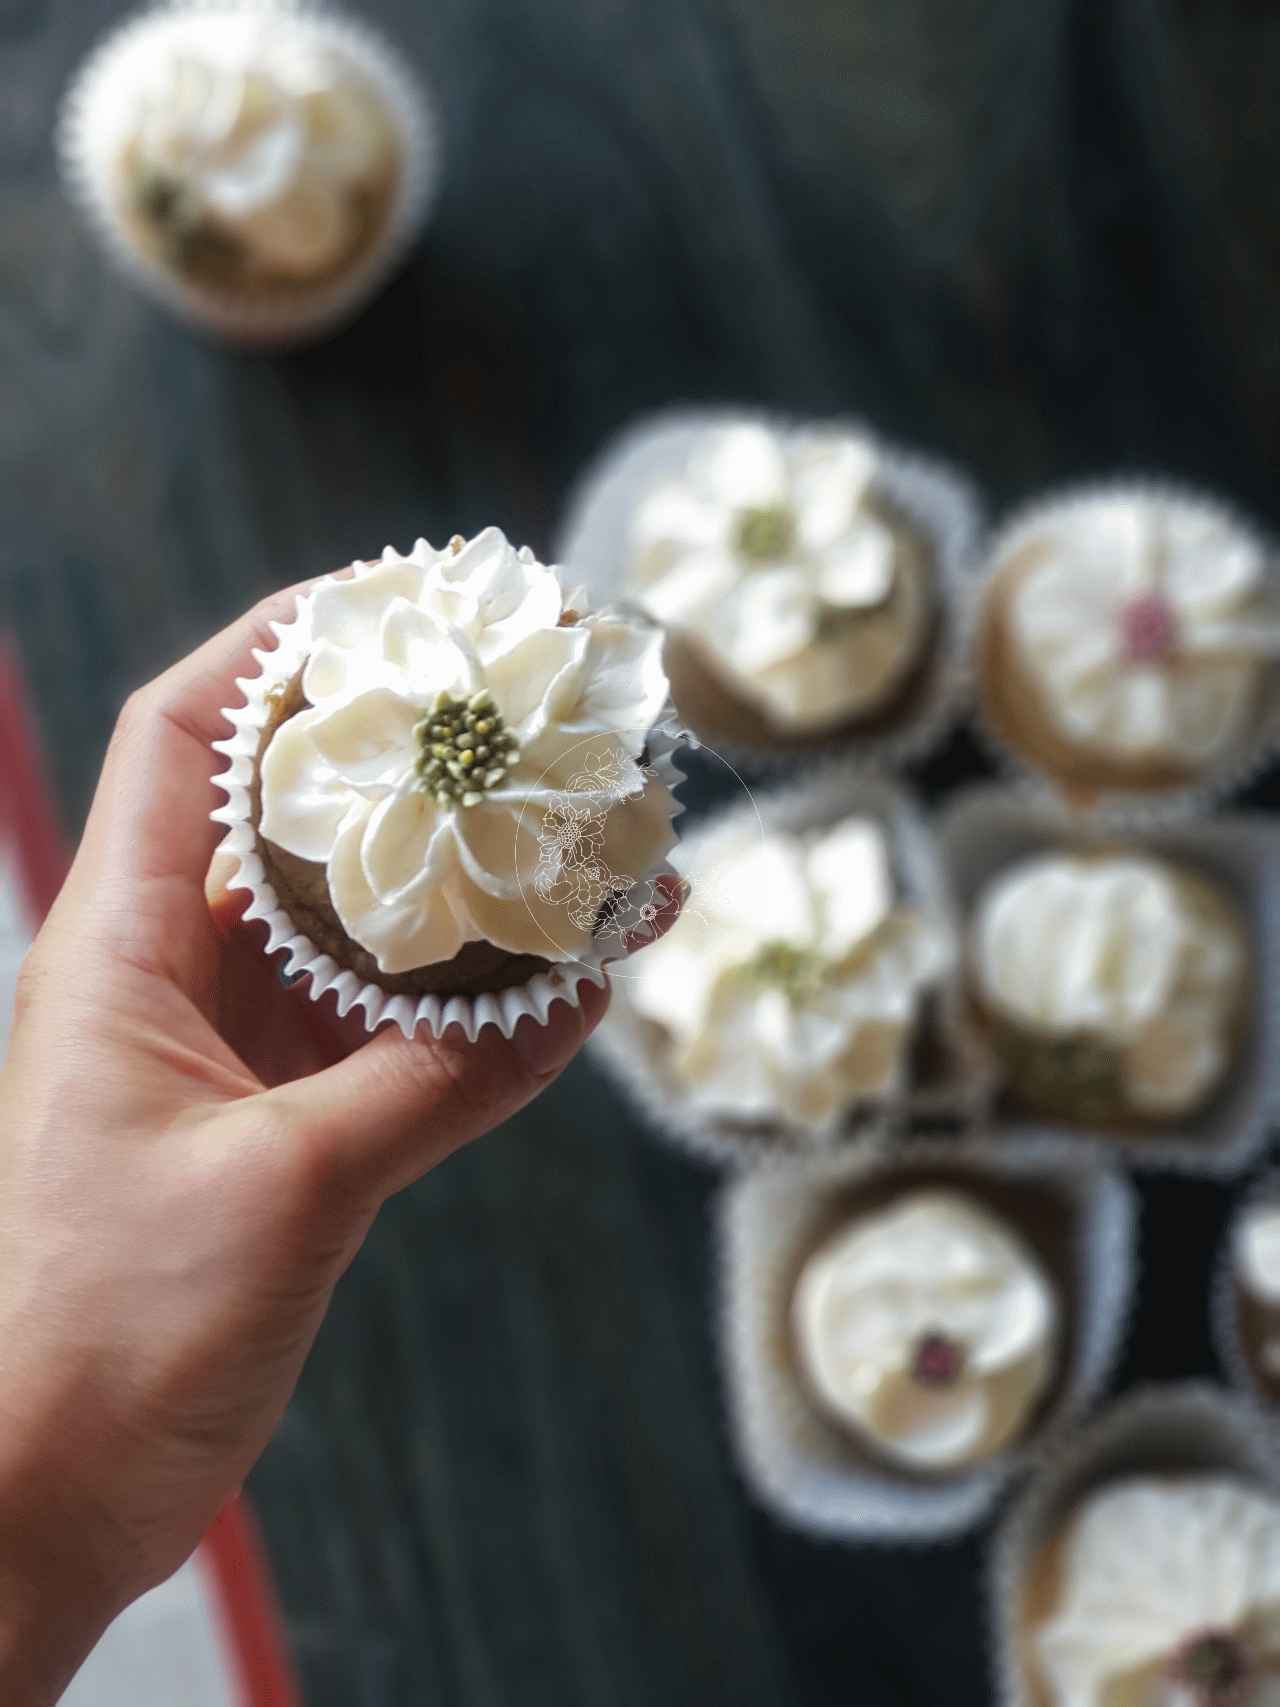 White Sweet Blossom Wedding Cupcakes, these ones have a filling of fresh fruit or home-made compote and a Vegan buttercream Scabiosa flower